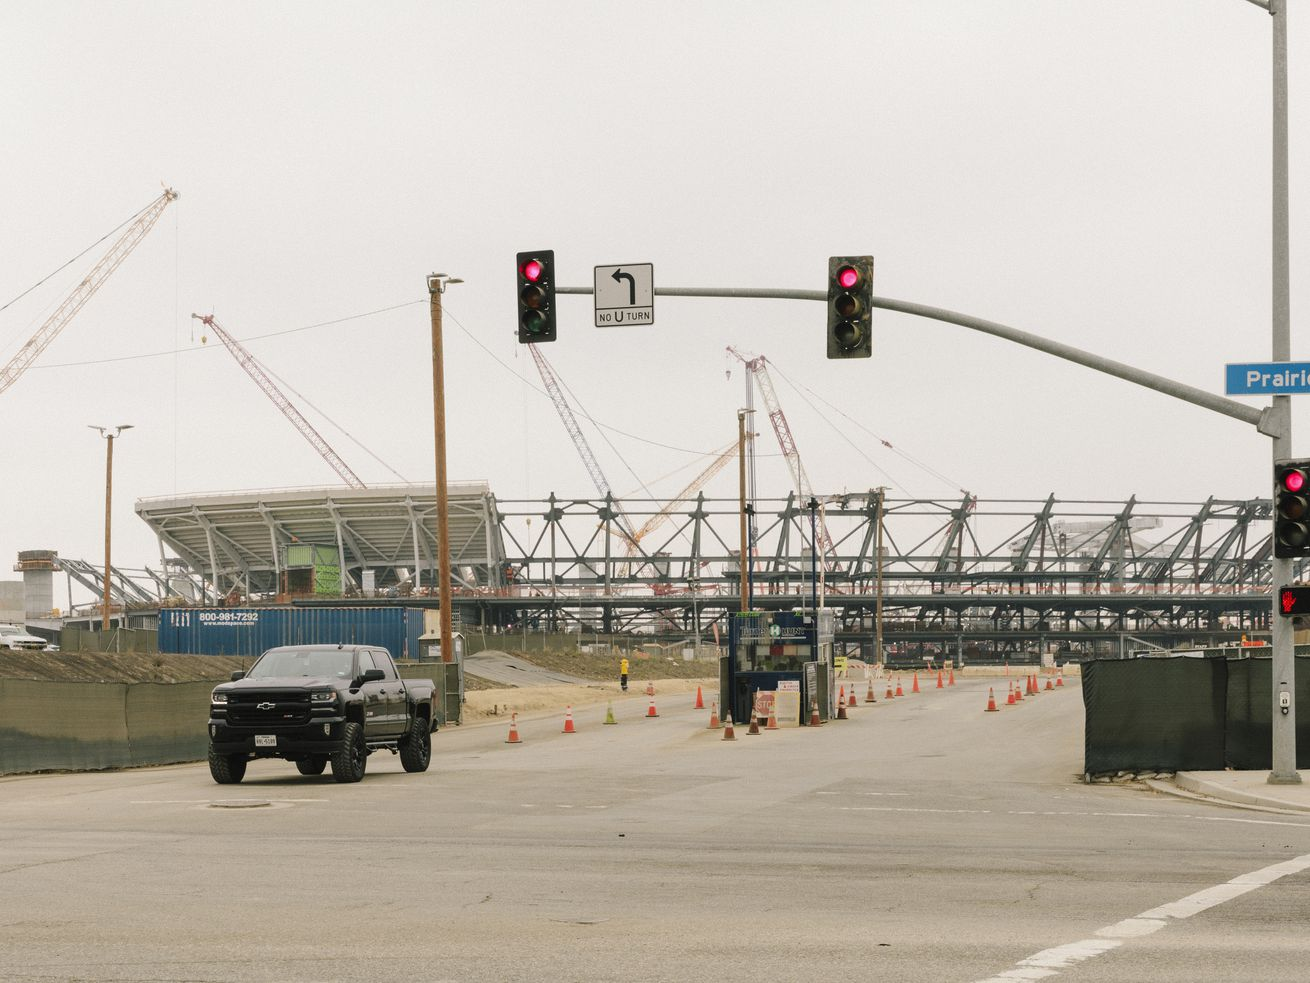 The NFL stadium under construction in Inglewood.